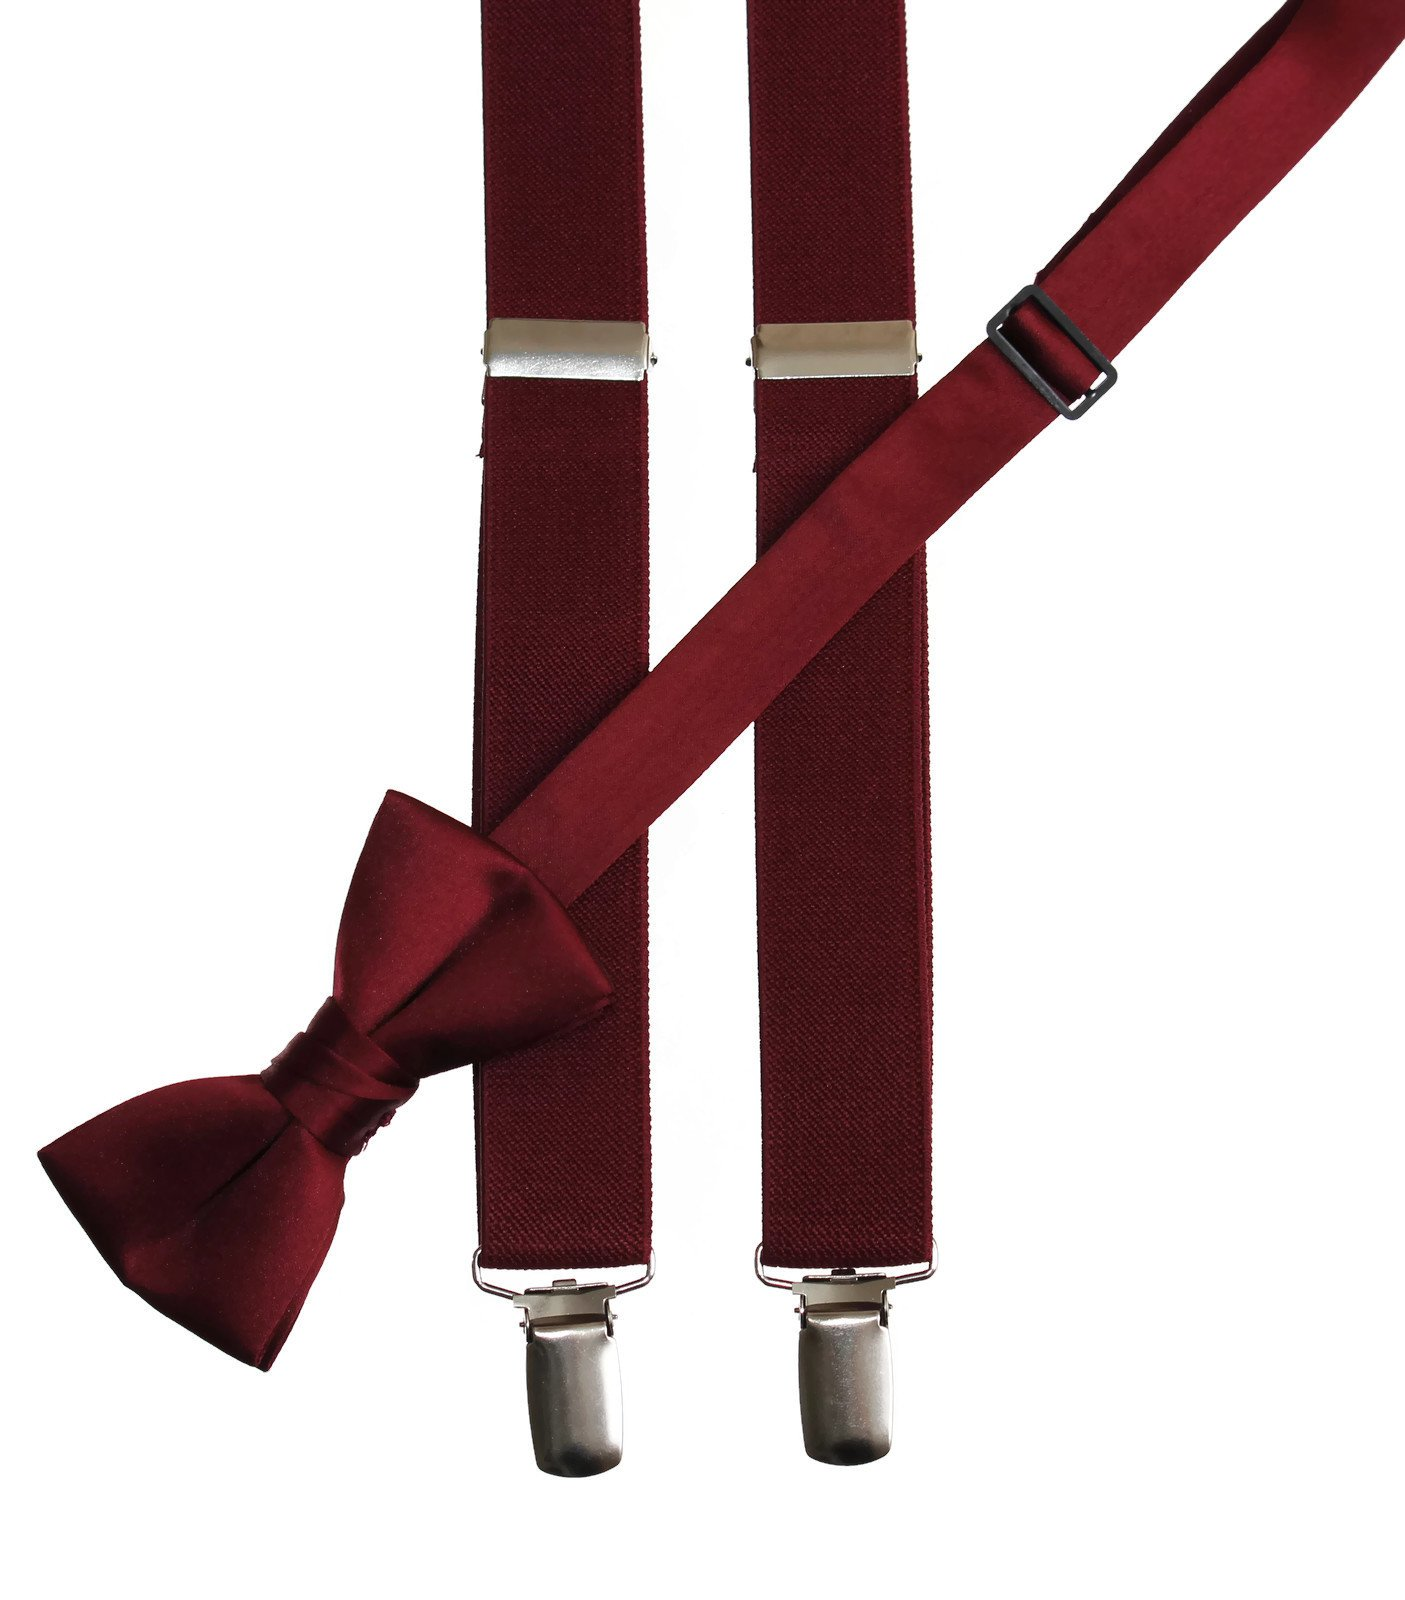 Matching Burgundy Adjustable Suspender and Bow Tie Sets, Kids to Adults Sizing (25'' Toddlers Ages 2-5)